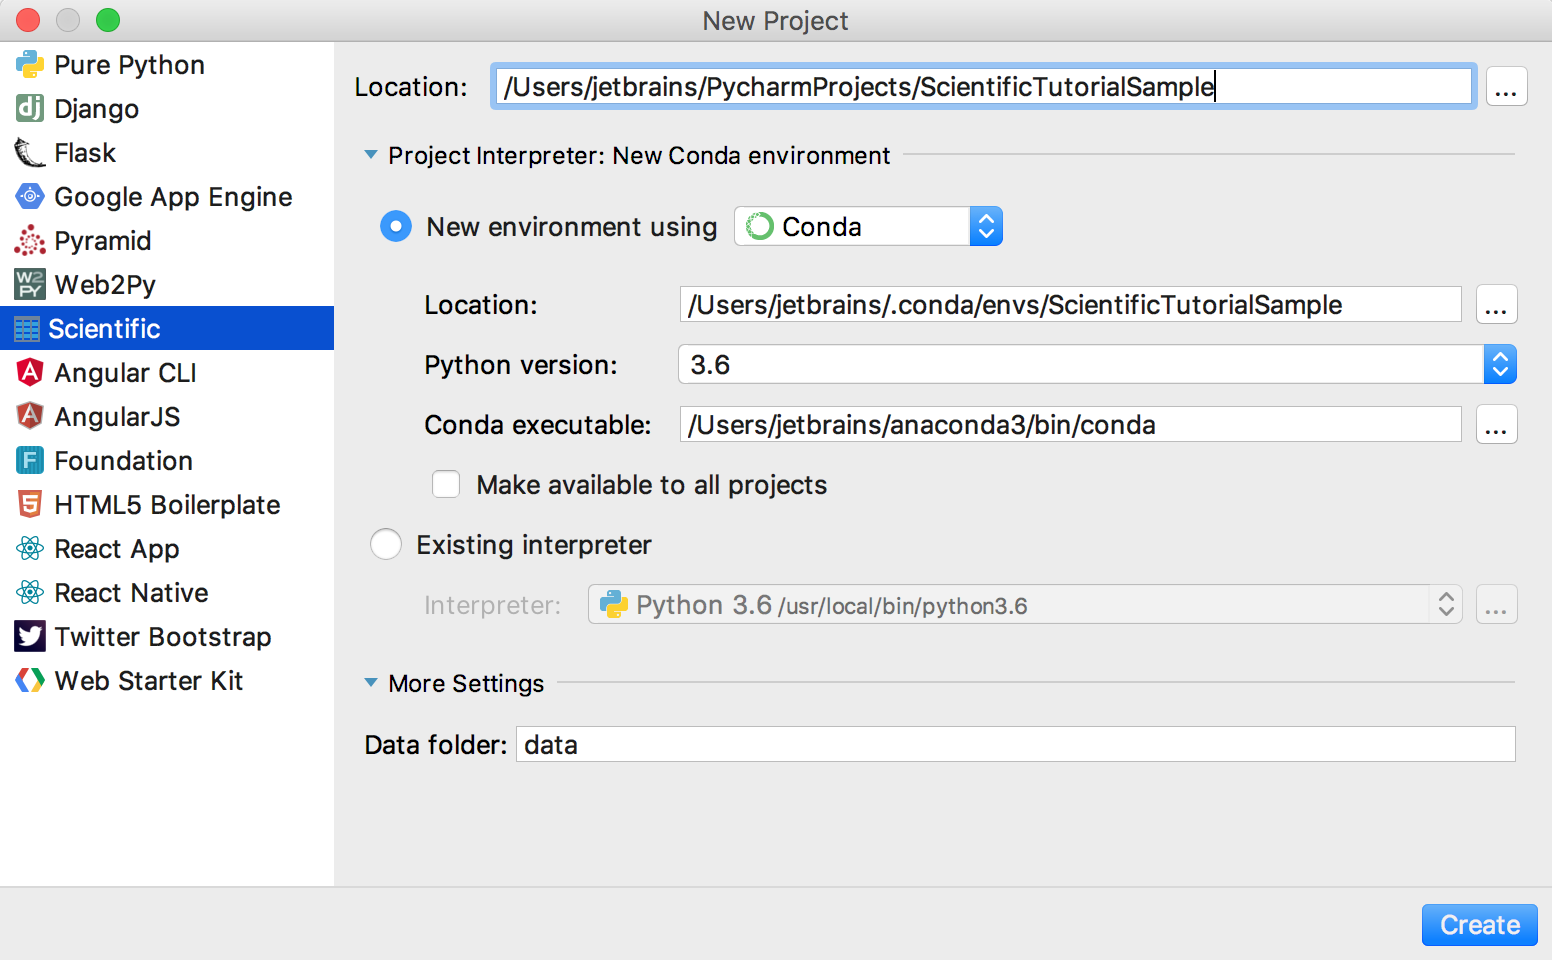 creating a new scientific project in PyCharm